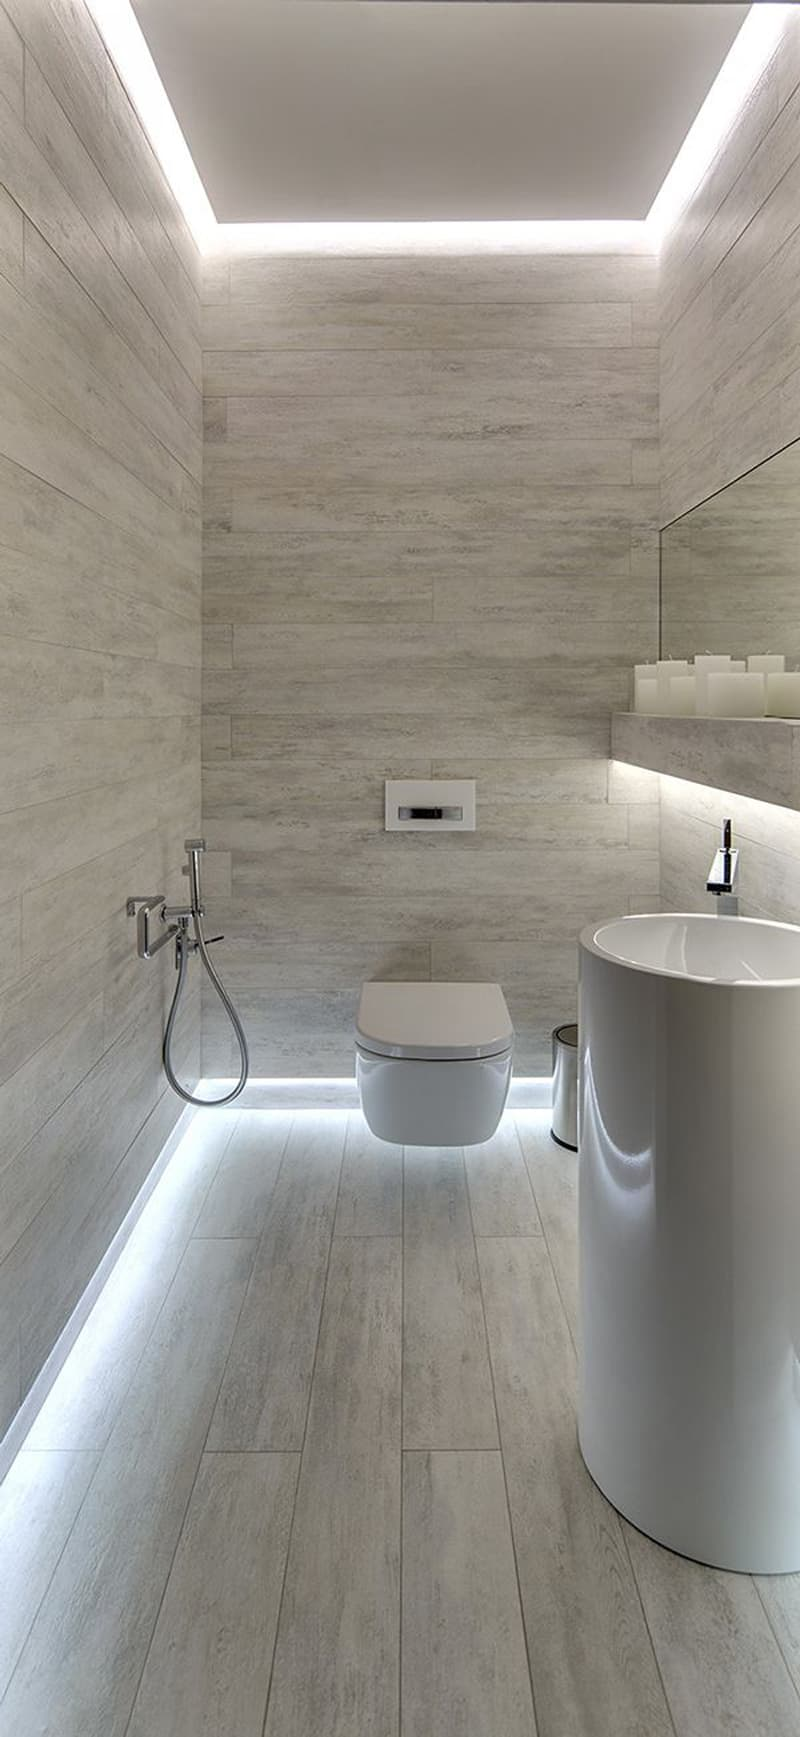 How to light your bathroom right led light bathroom designrulz 29 aloadofball